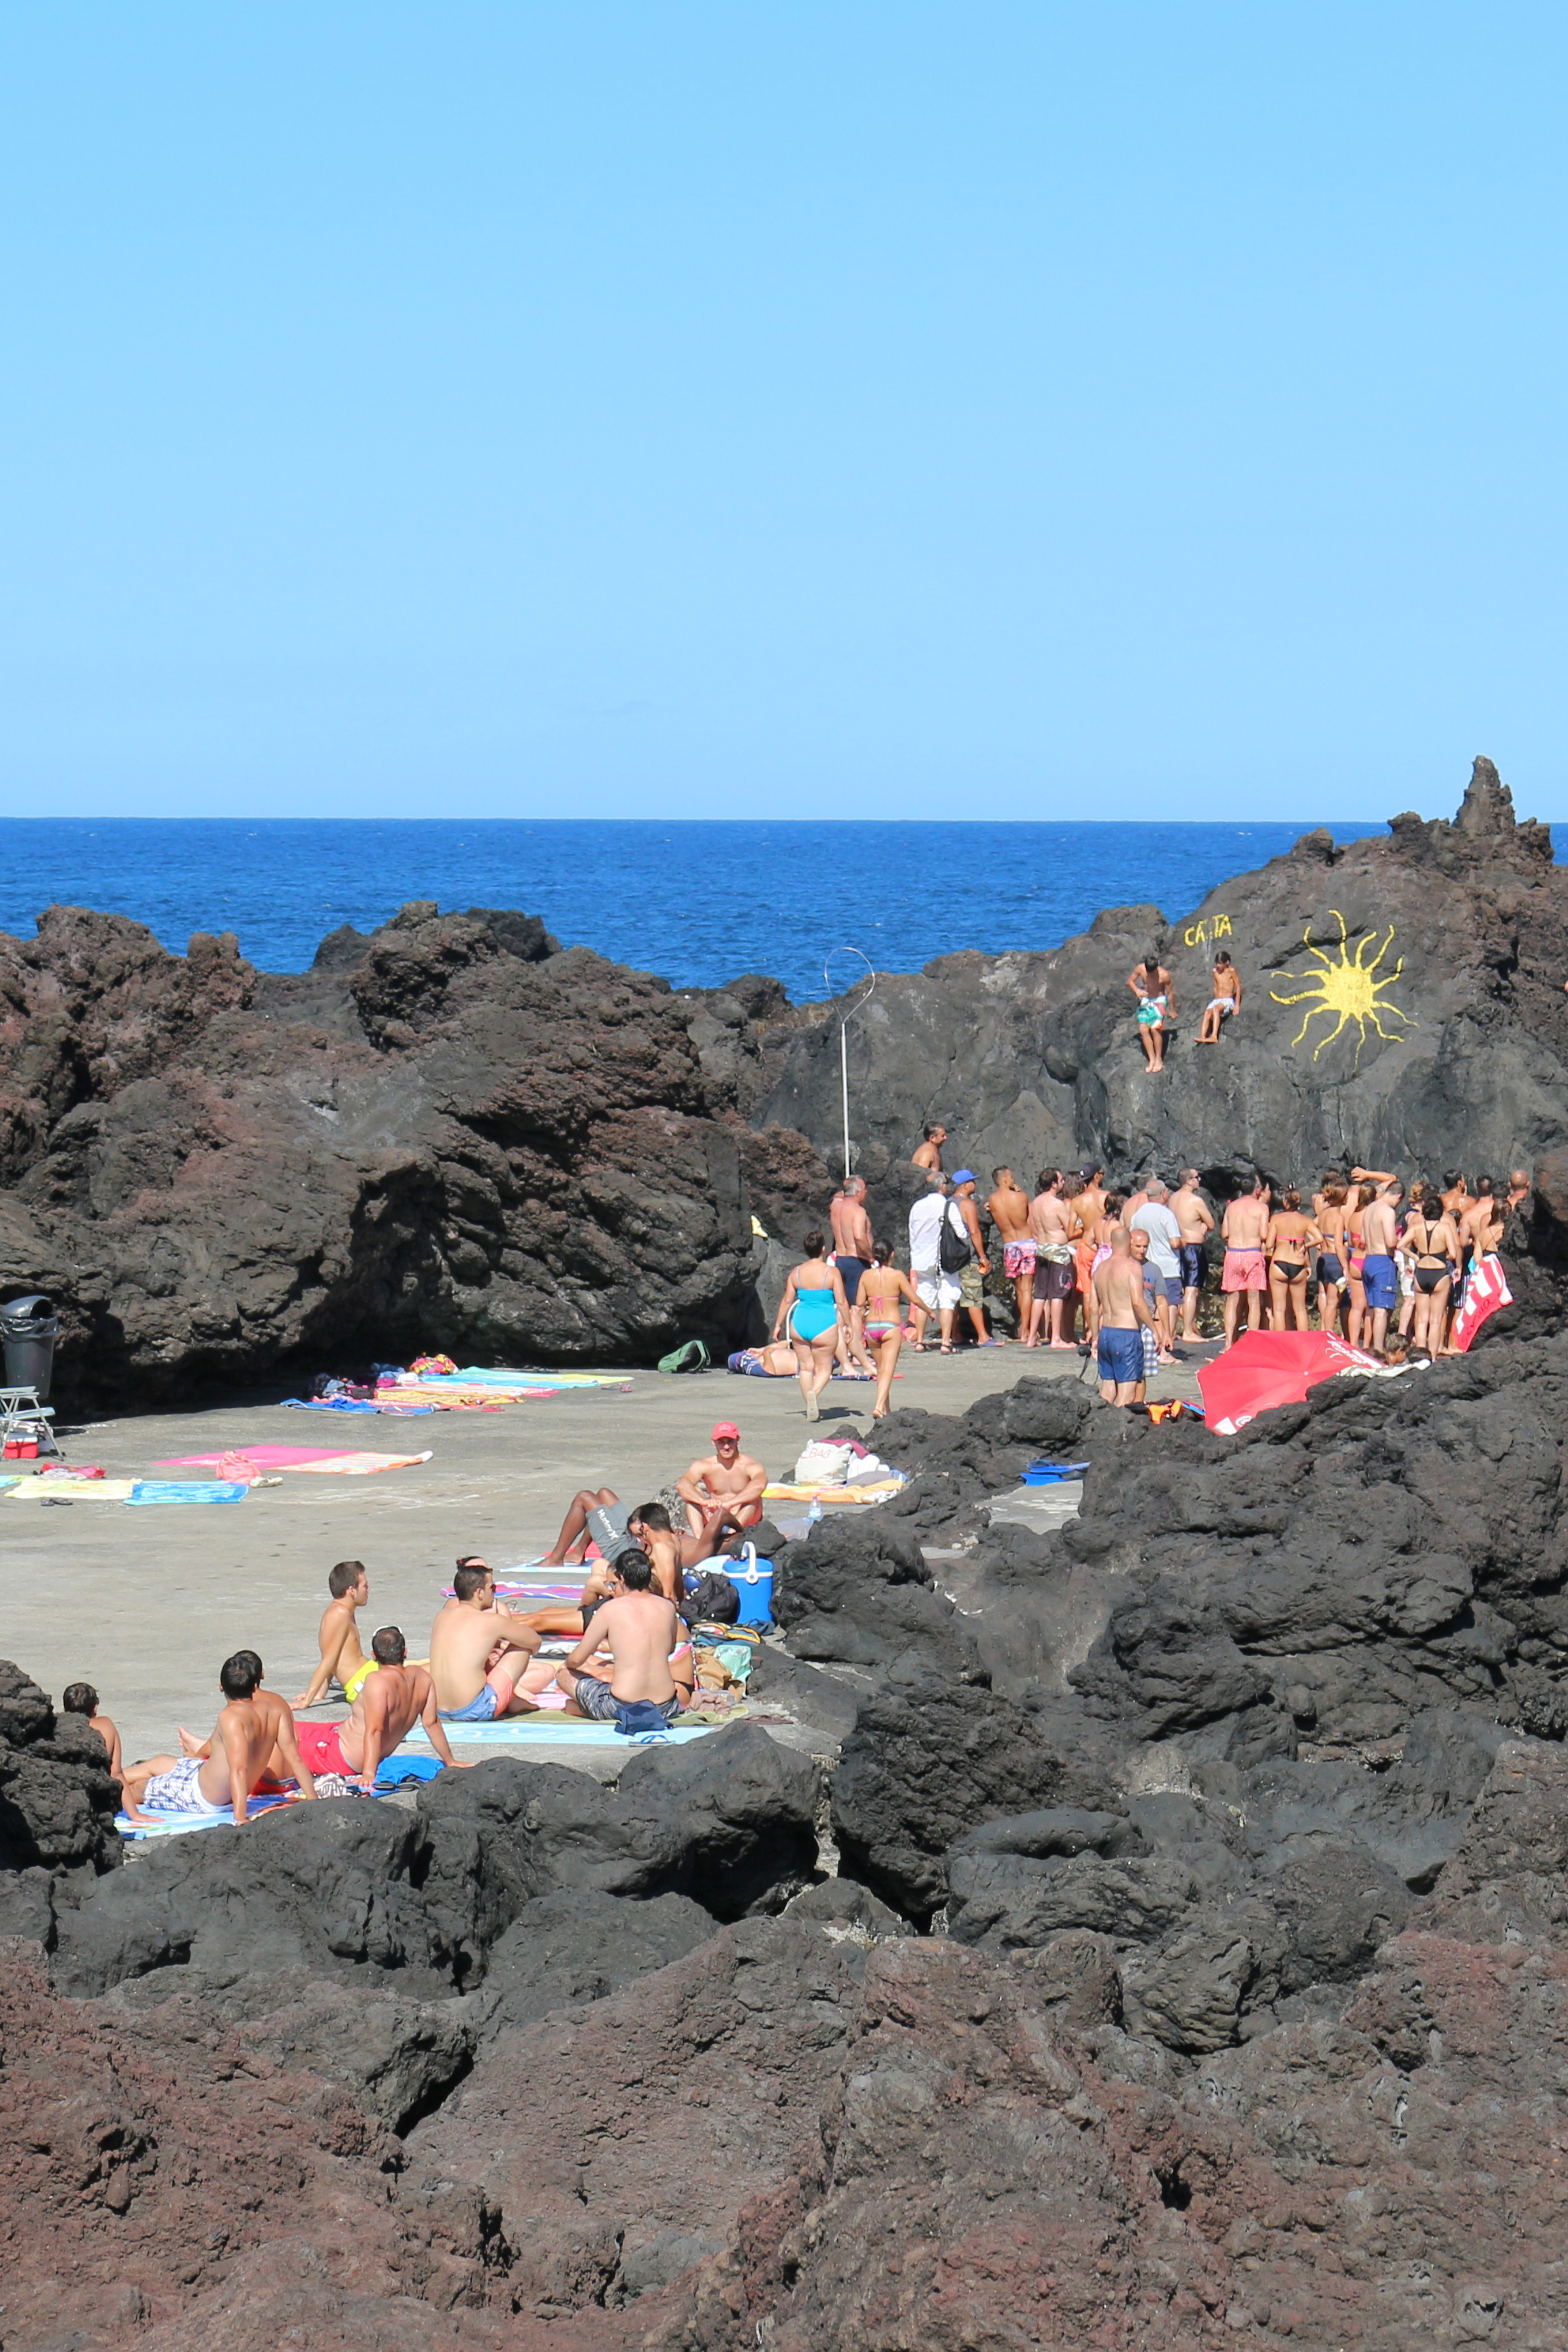 The other-worldly black lava beach of Biscoitos on the island of Terceira